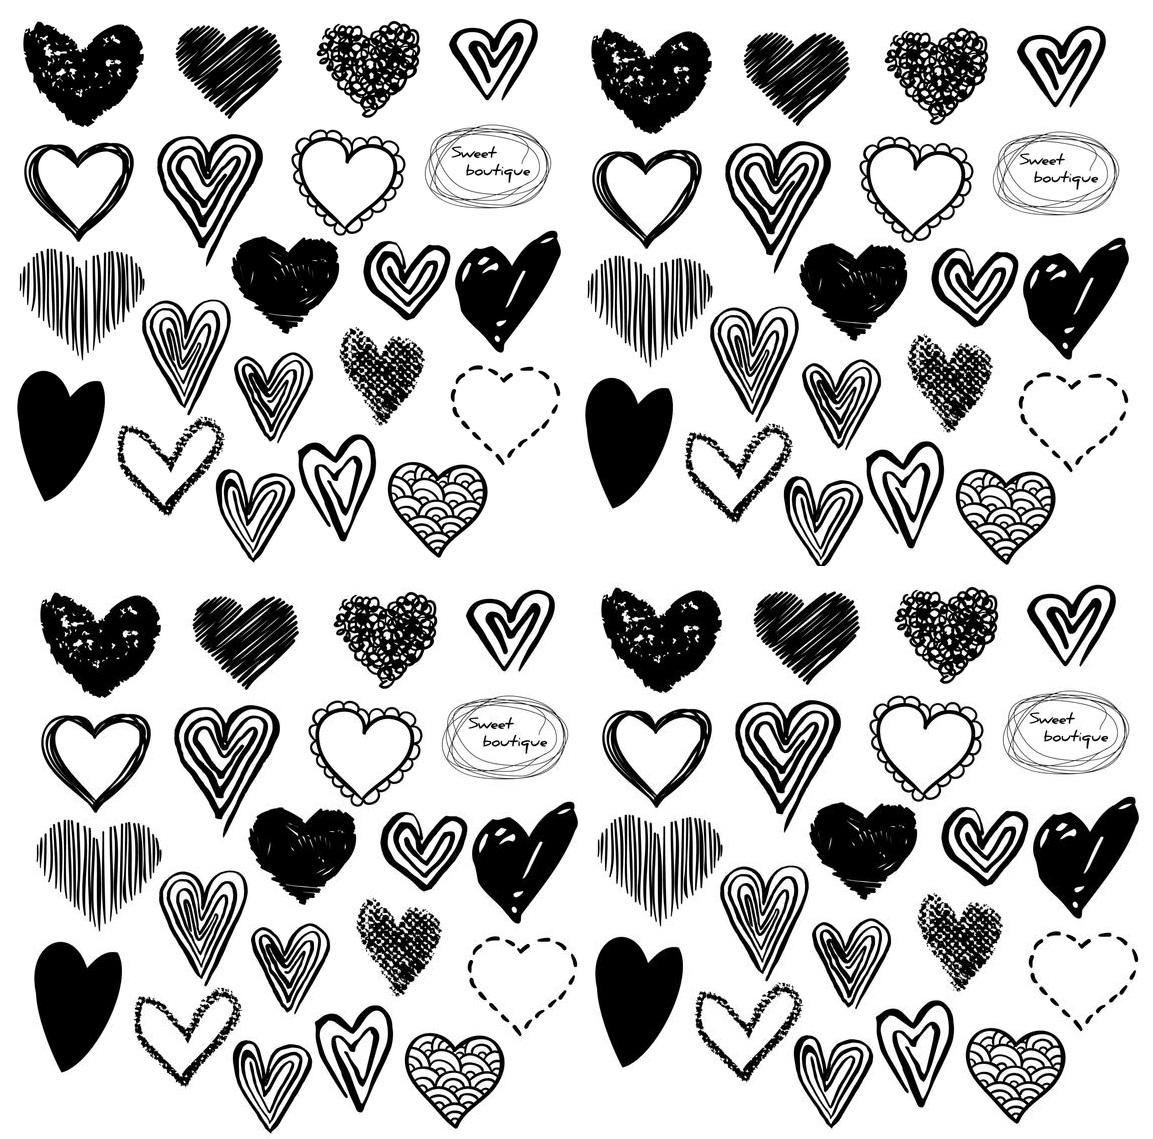 Small Hearts Cliparts Black And White.